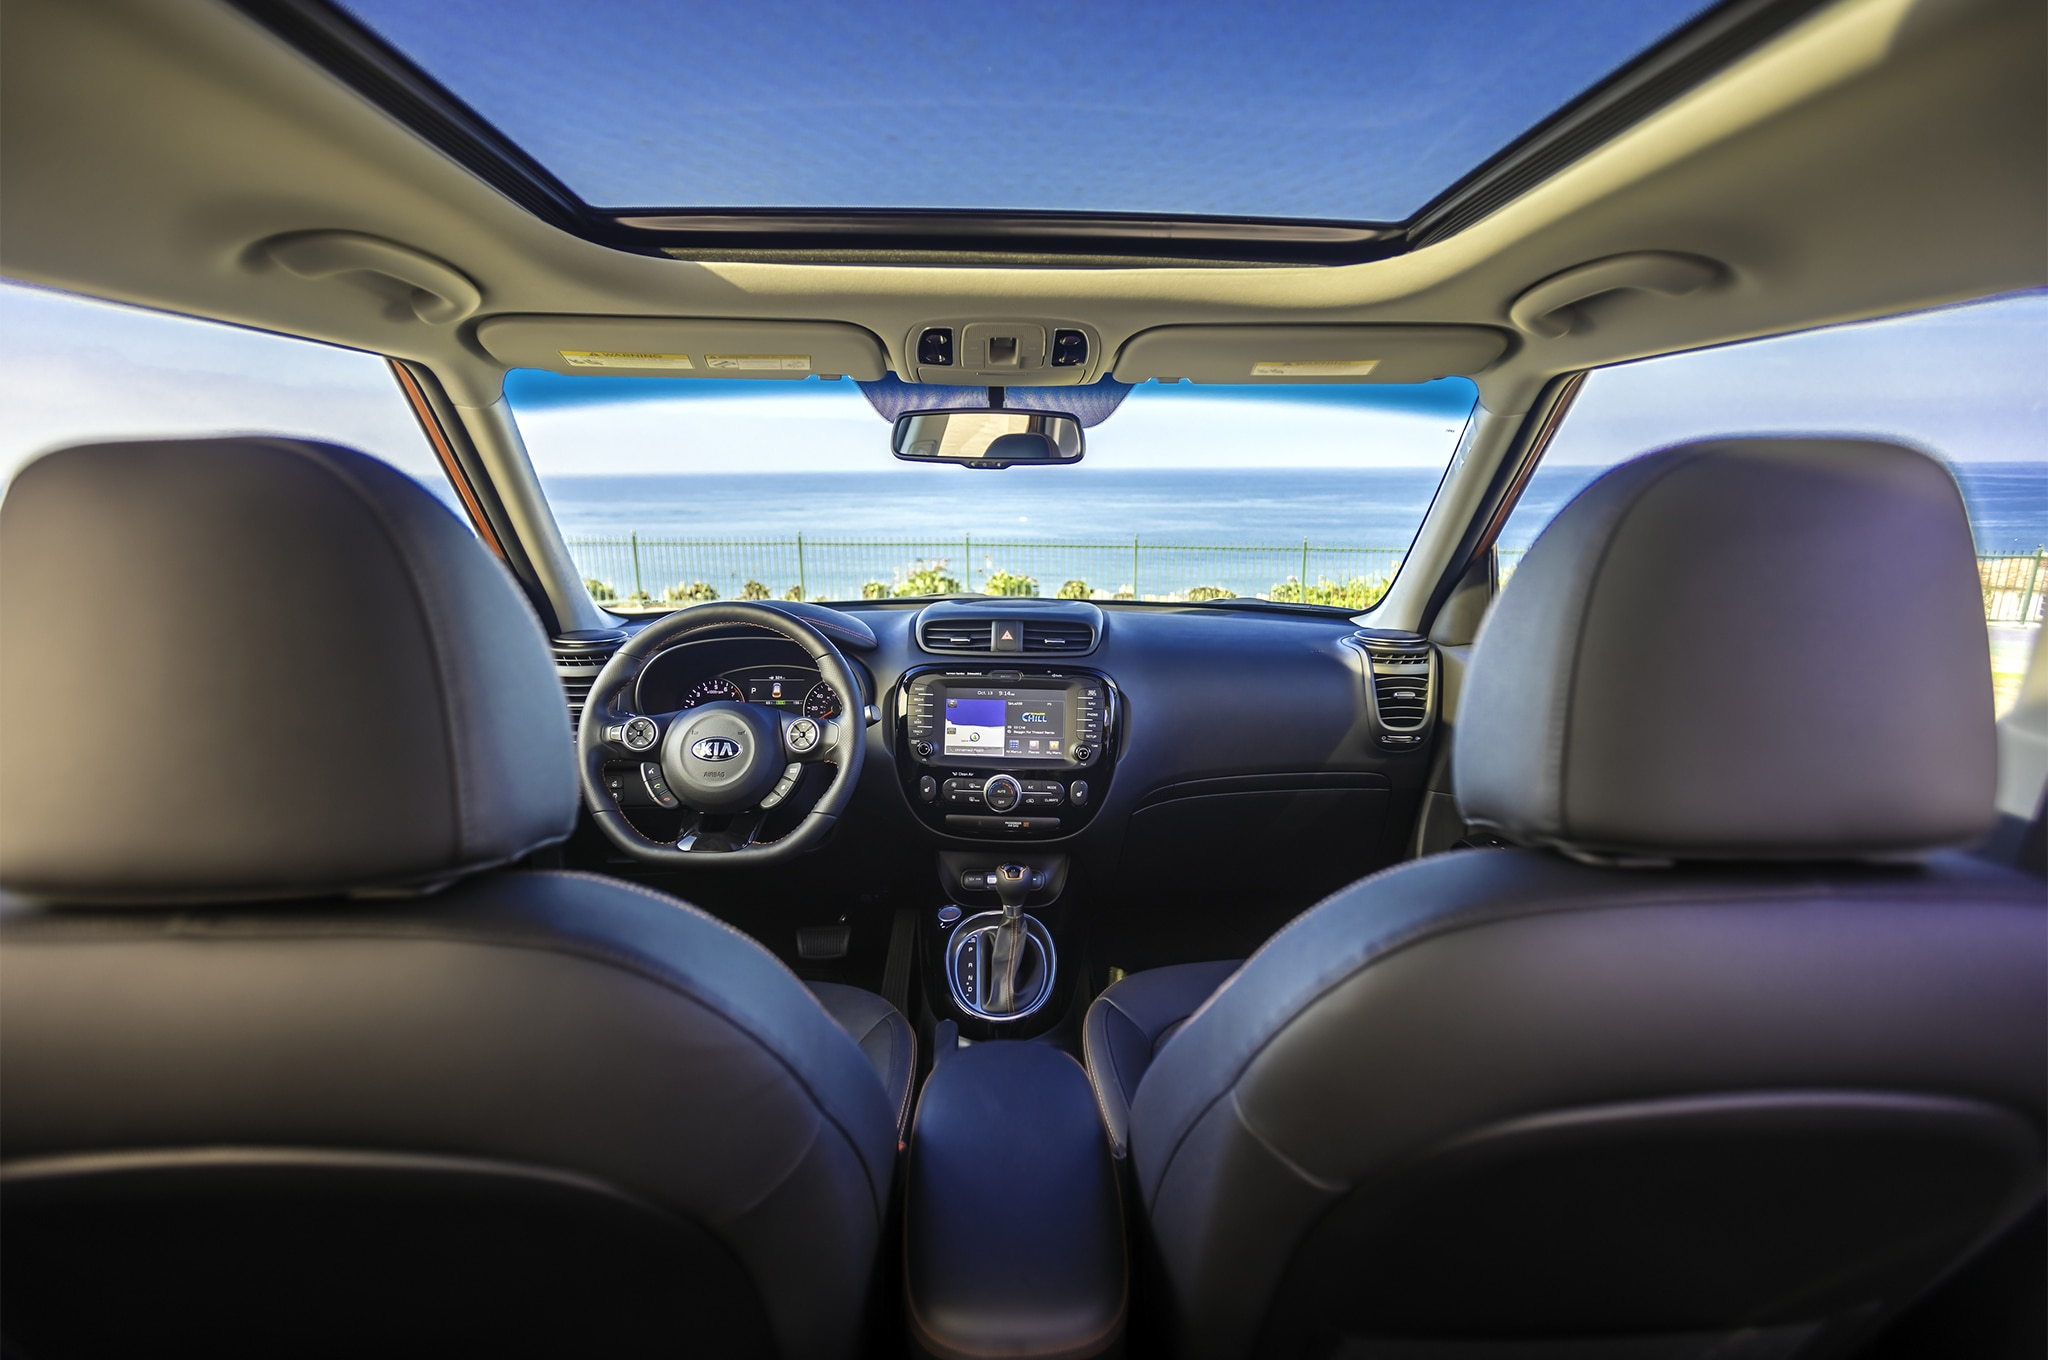 2017 Kia Soul Turbo front interior